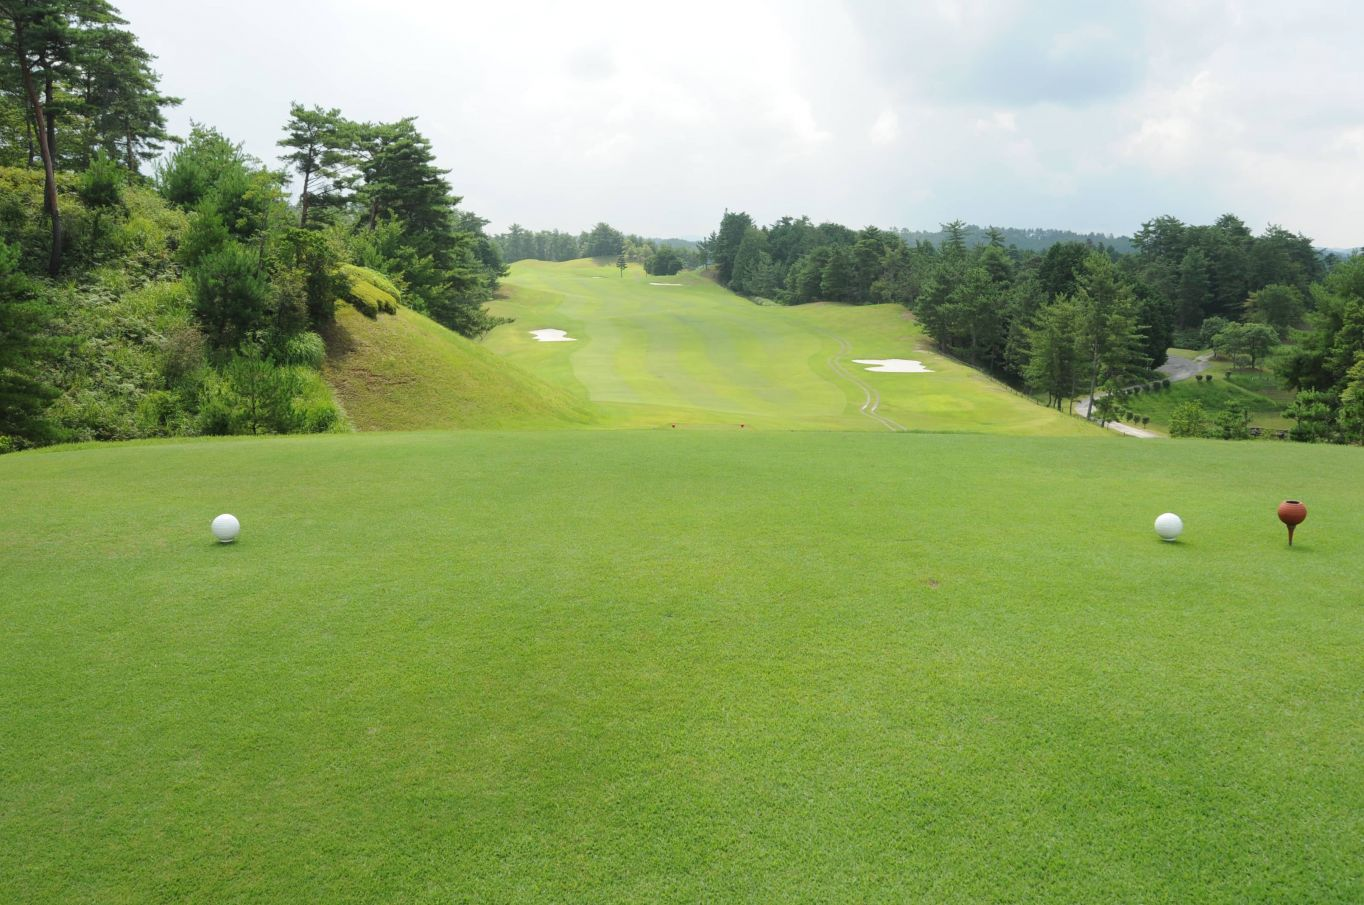 Kikyougaoka Golf Course